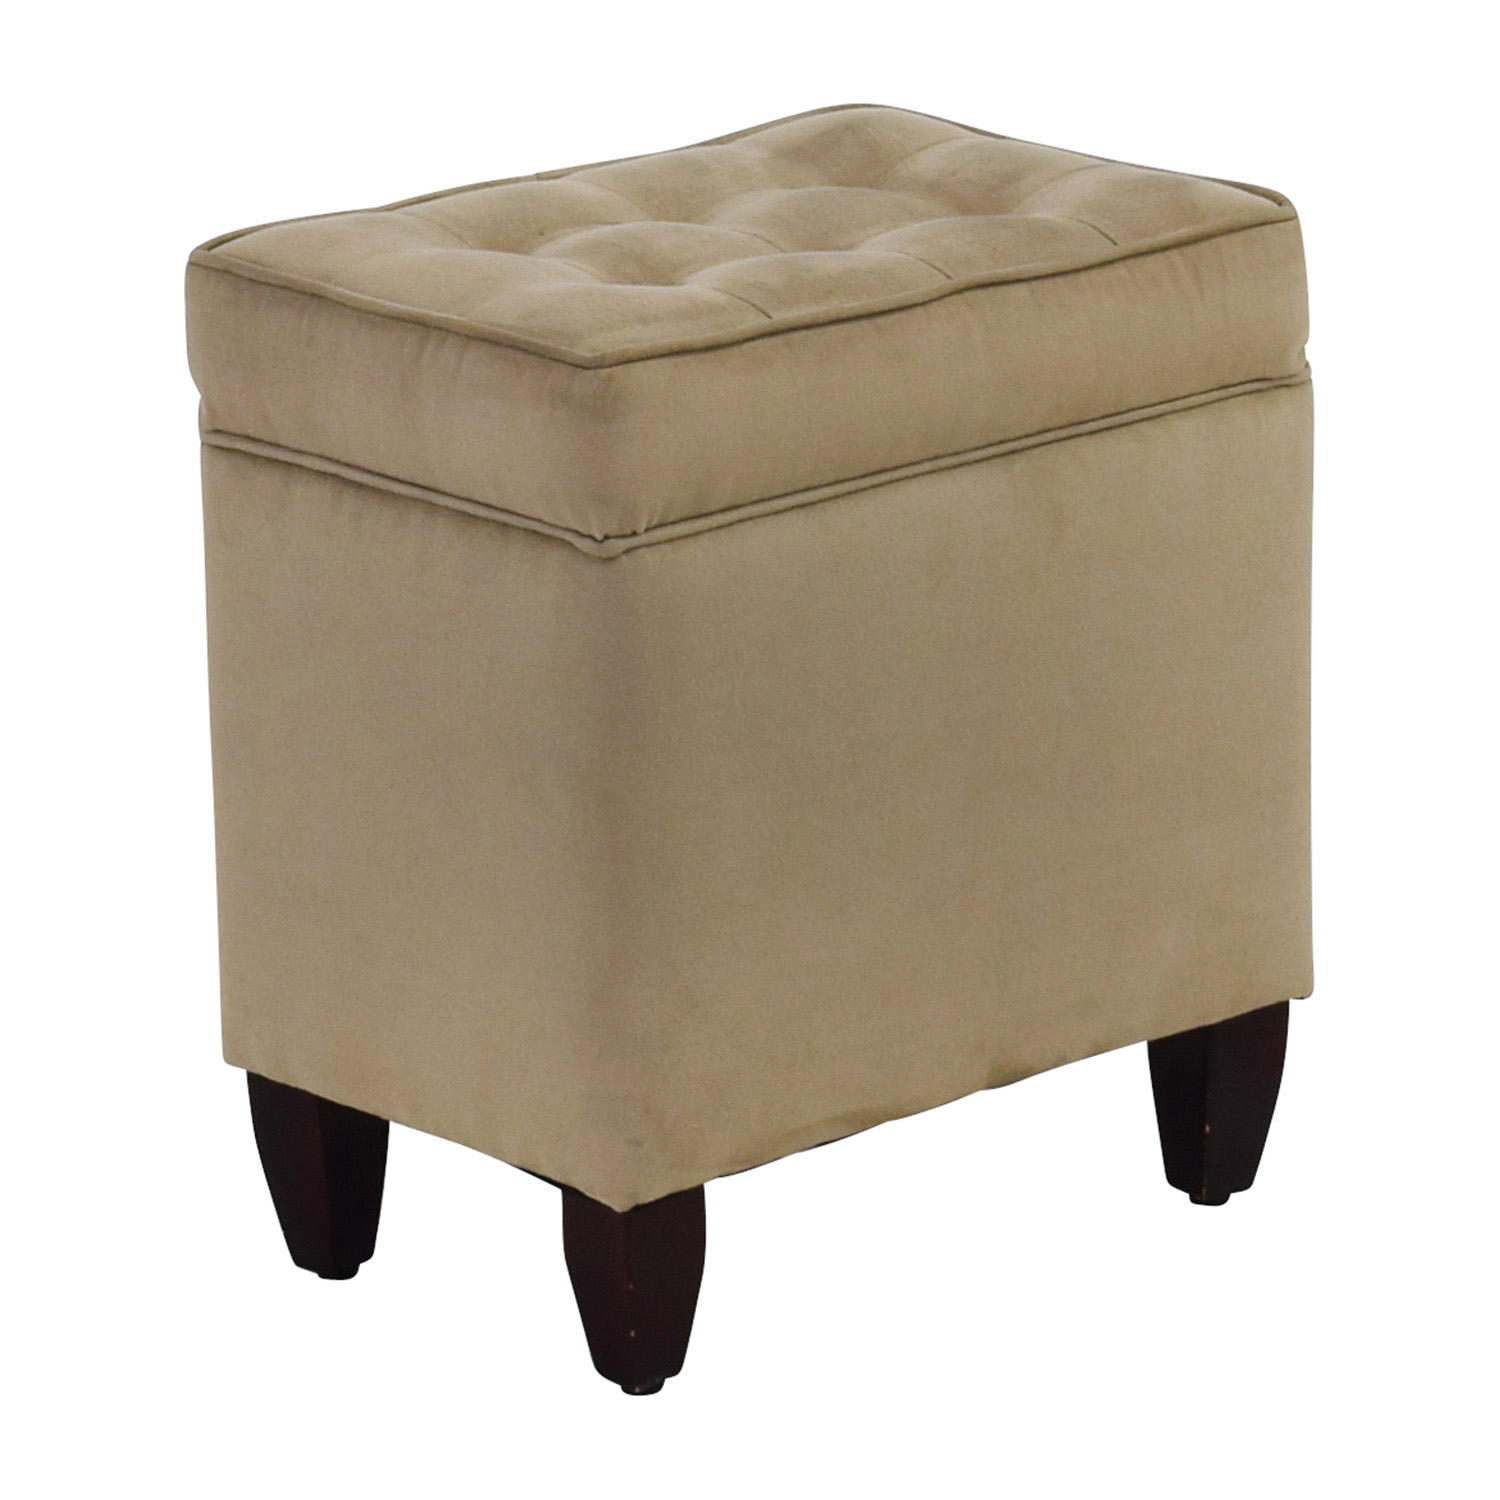 80 off beige tufted ottoman with storage chairs for Chair with storage